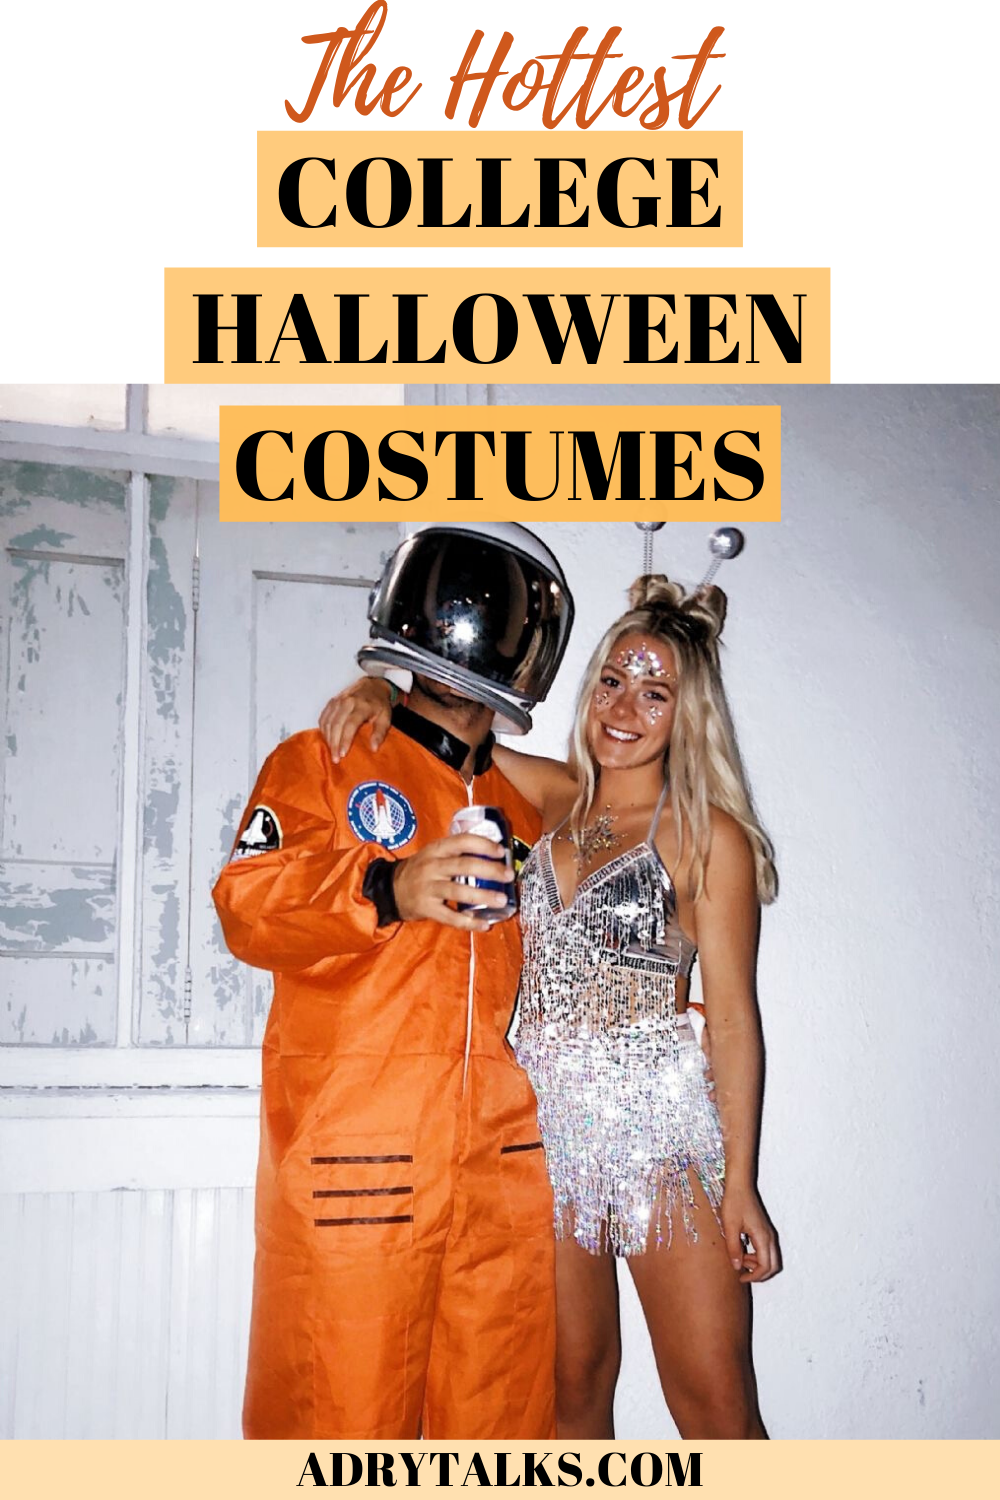 10 Hot AF Halloween Costumes for College in 2020 ...